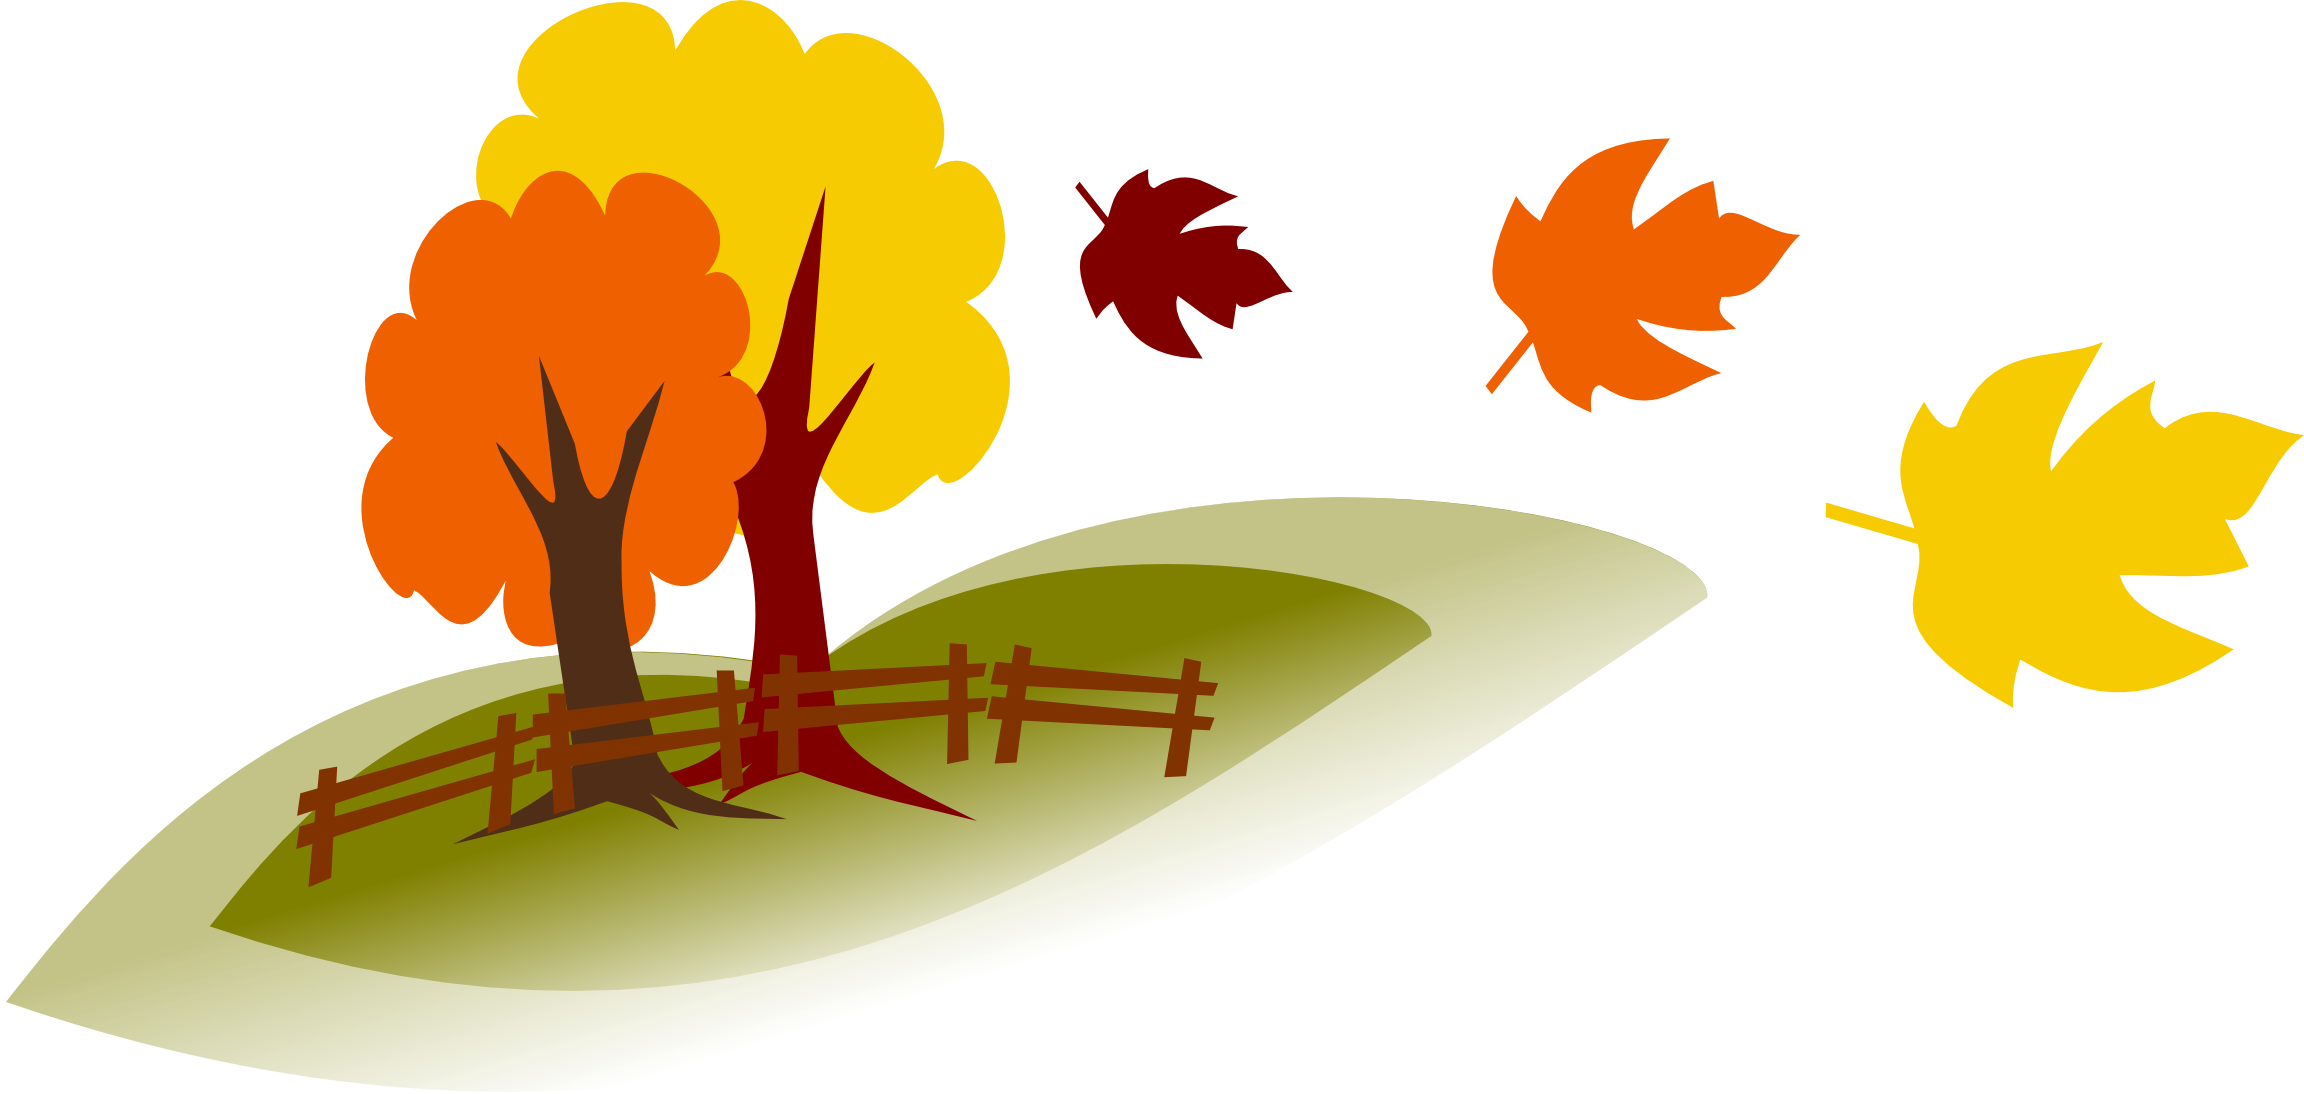 Design png images. File fall wikimedia commons